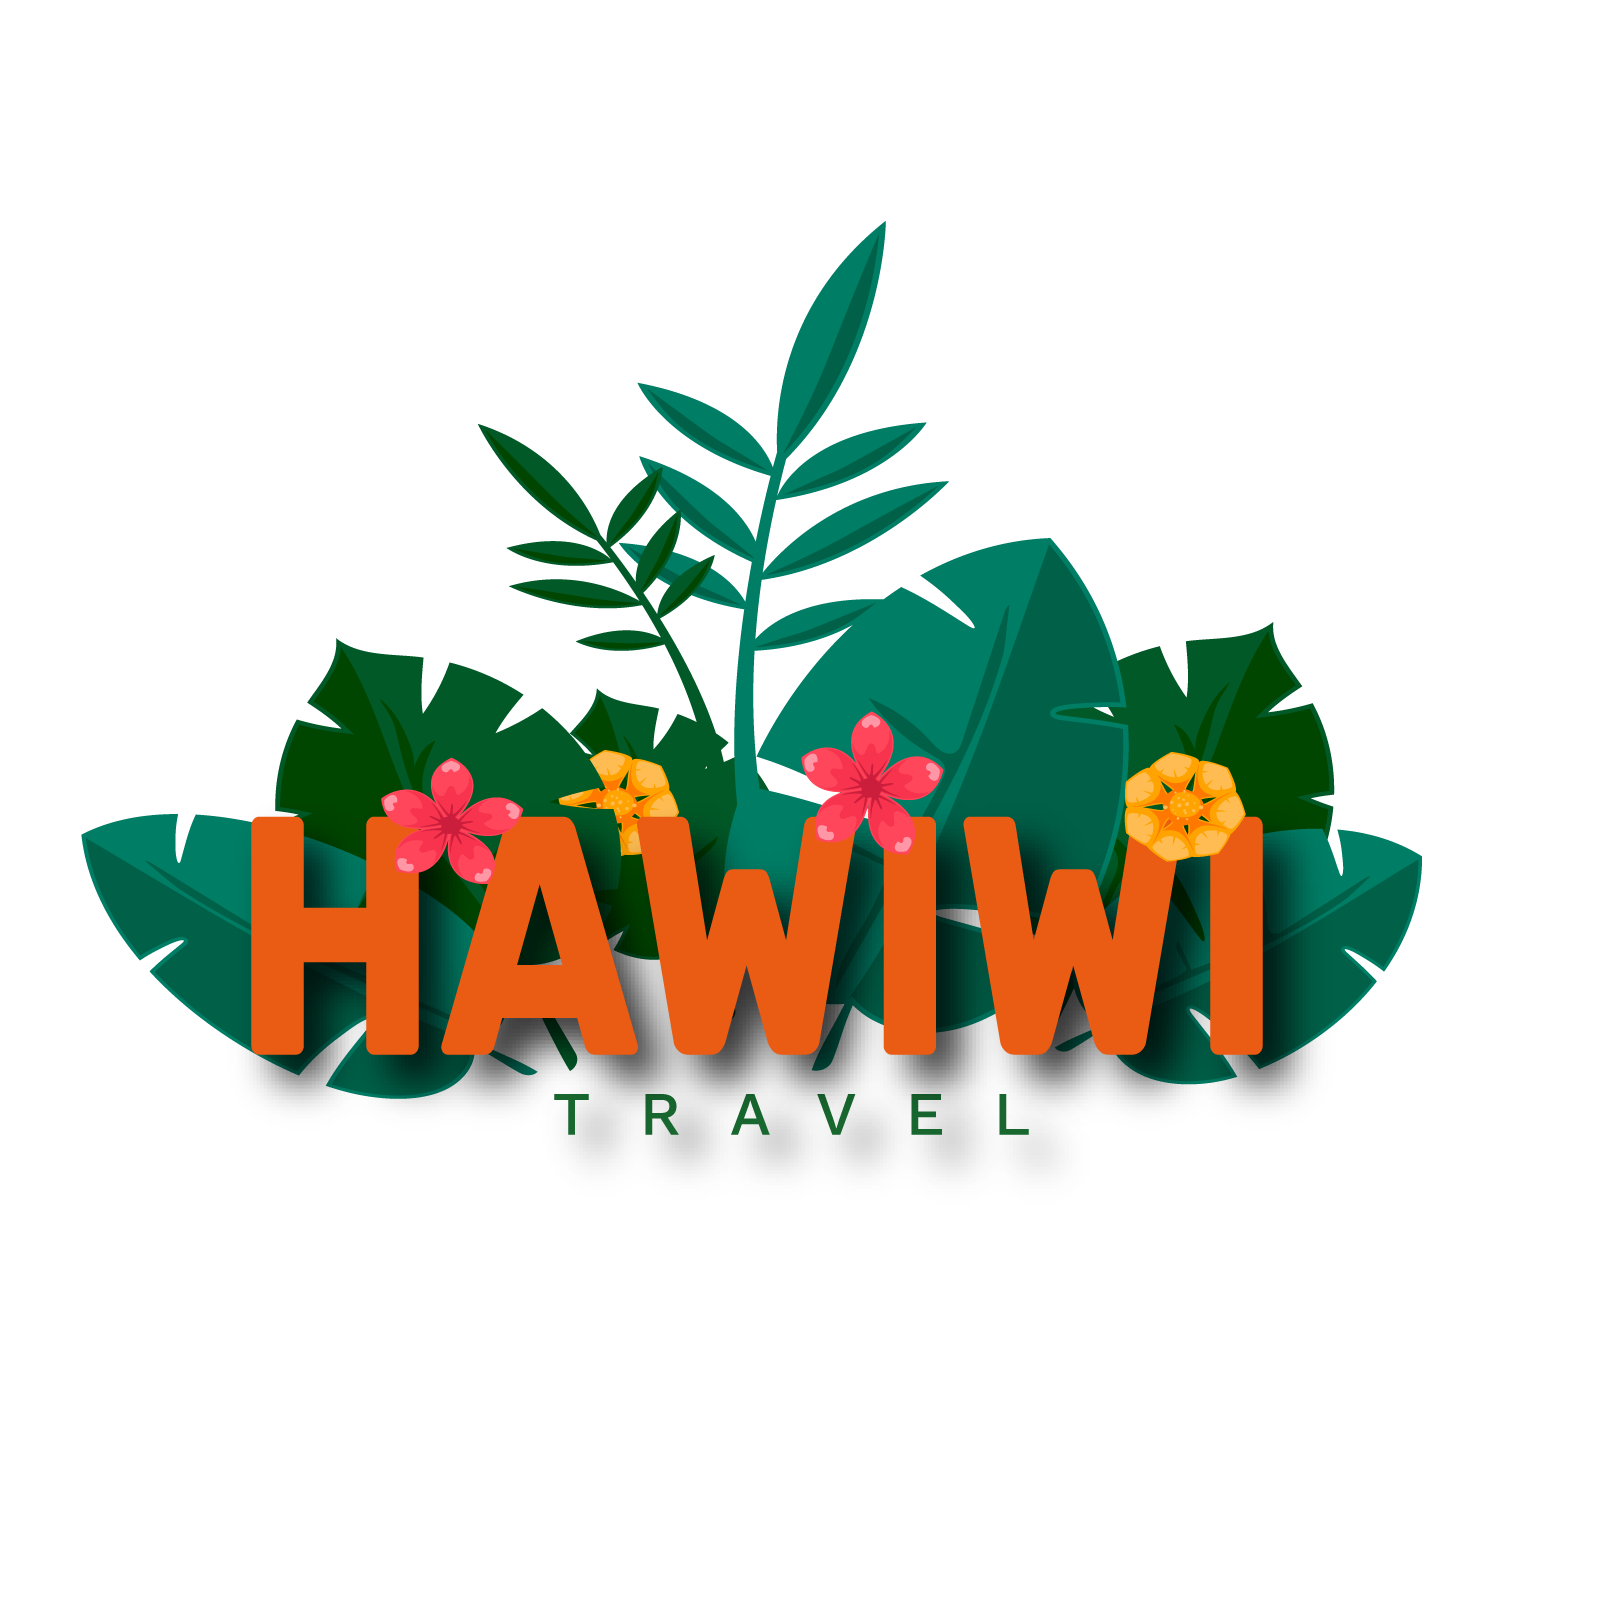 Hawiwi Travel